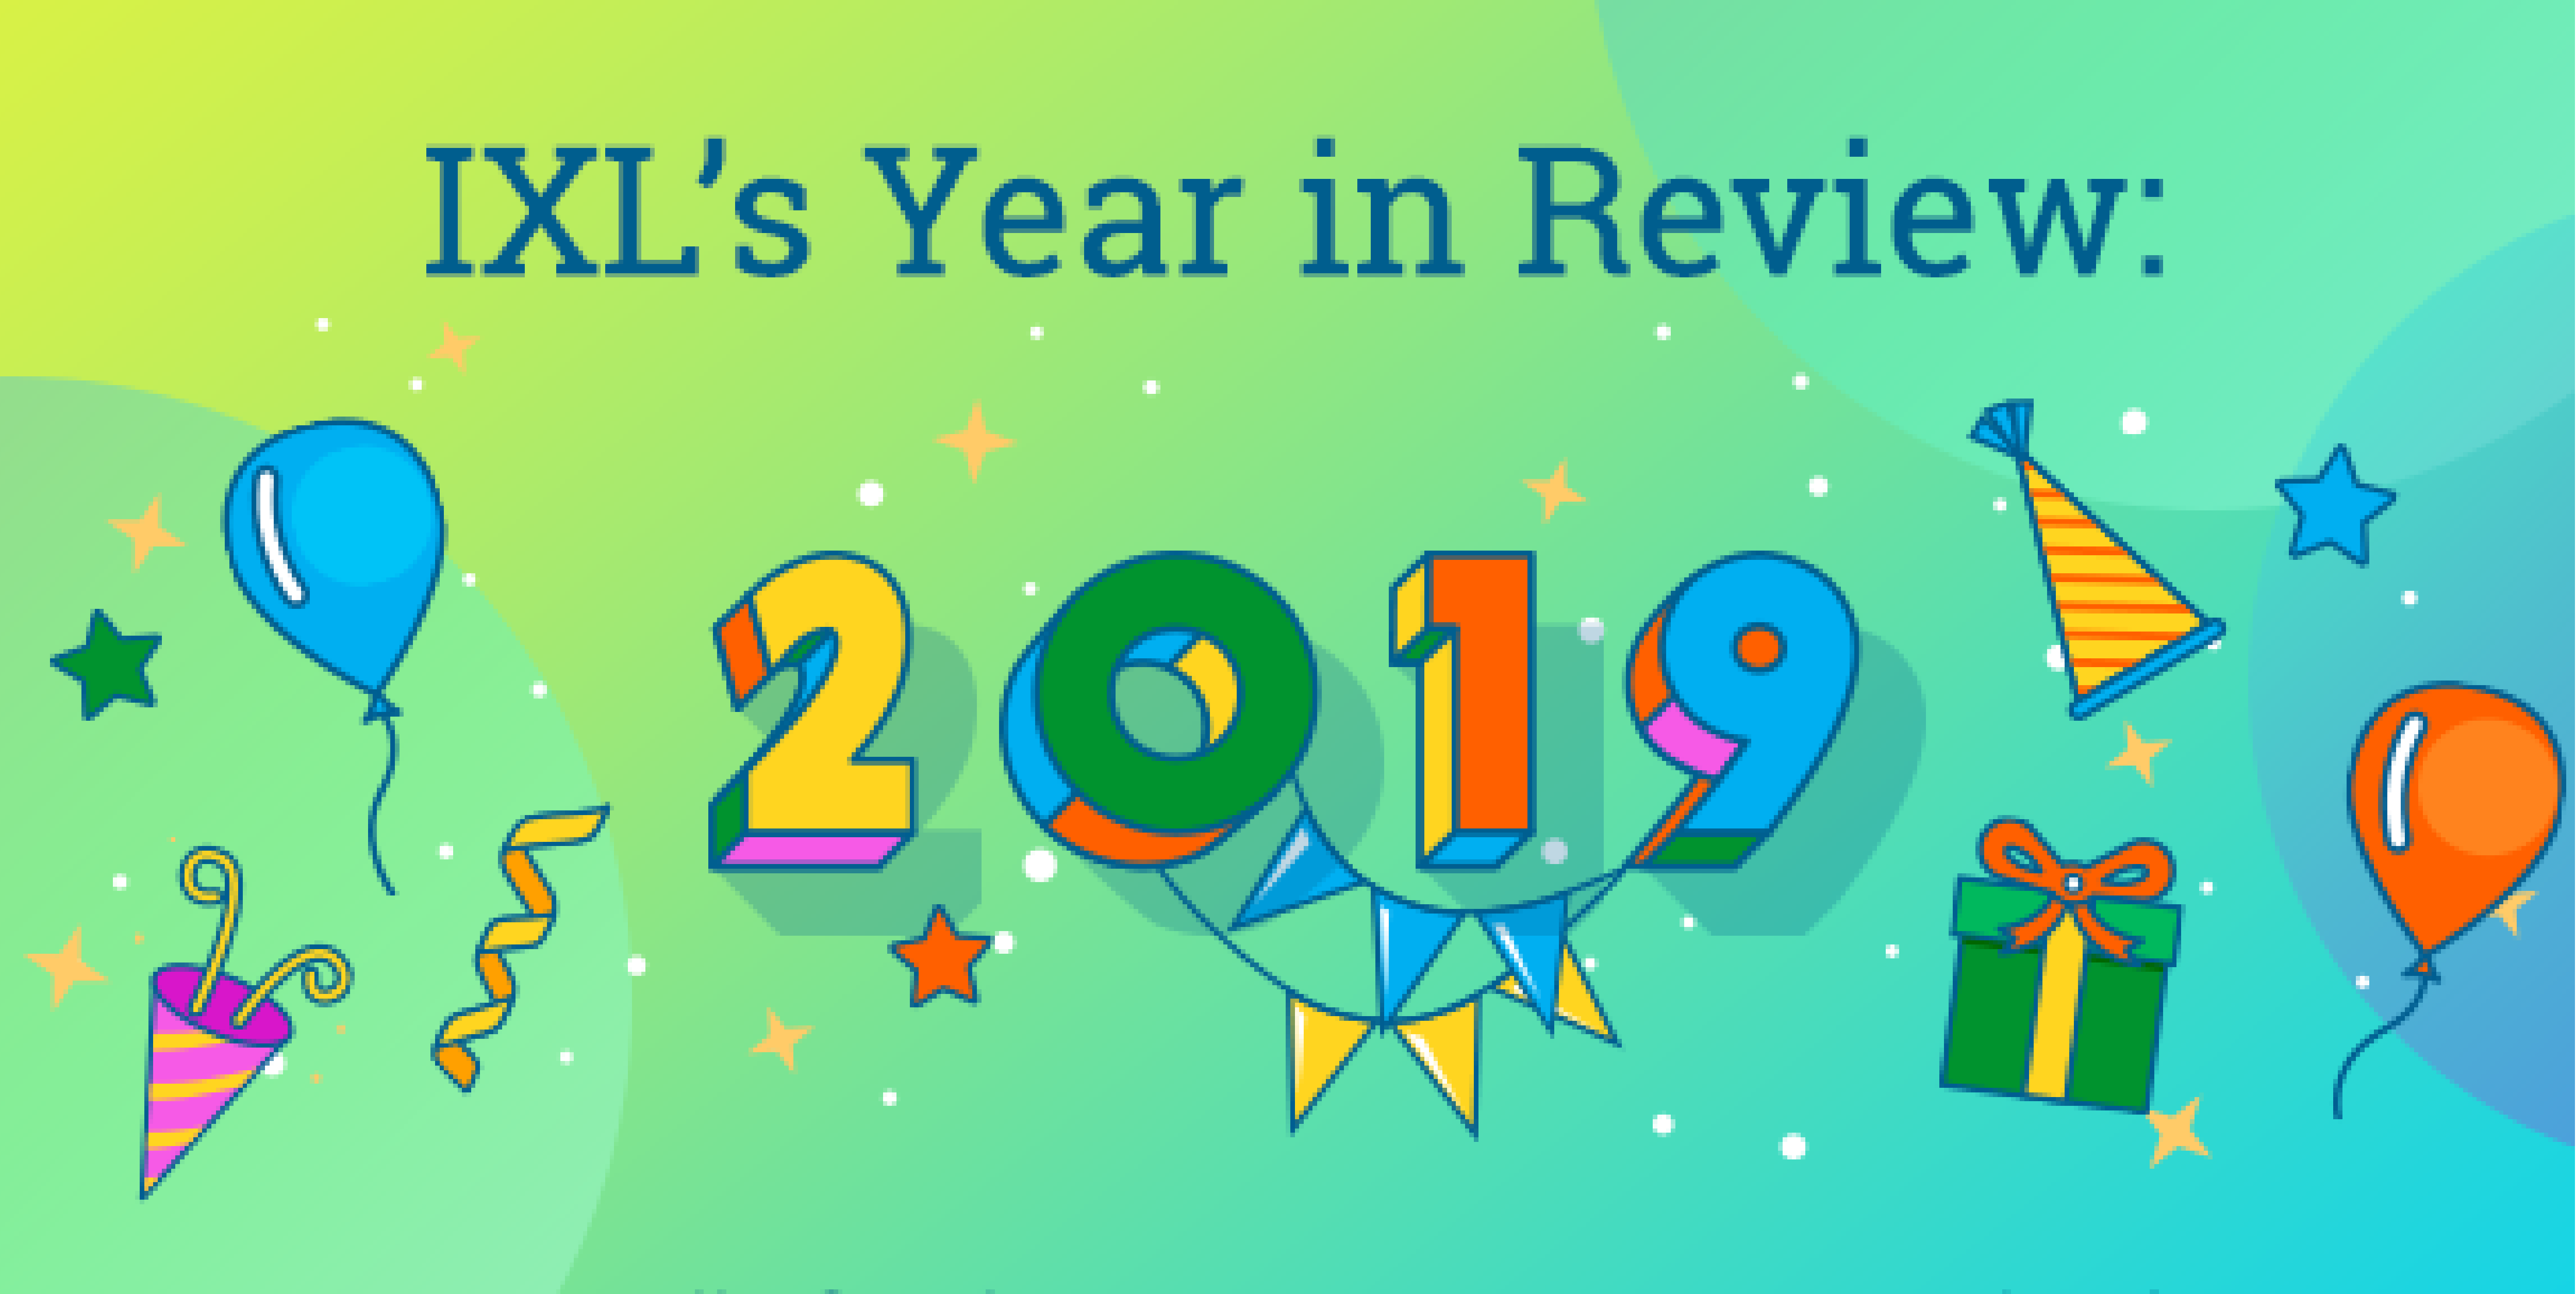 IXL's 2019 Year in Review